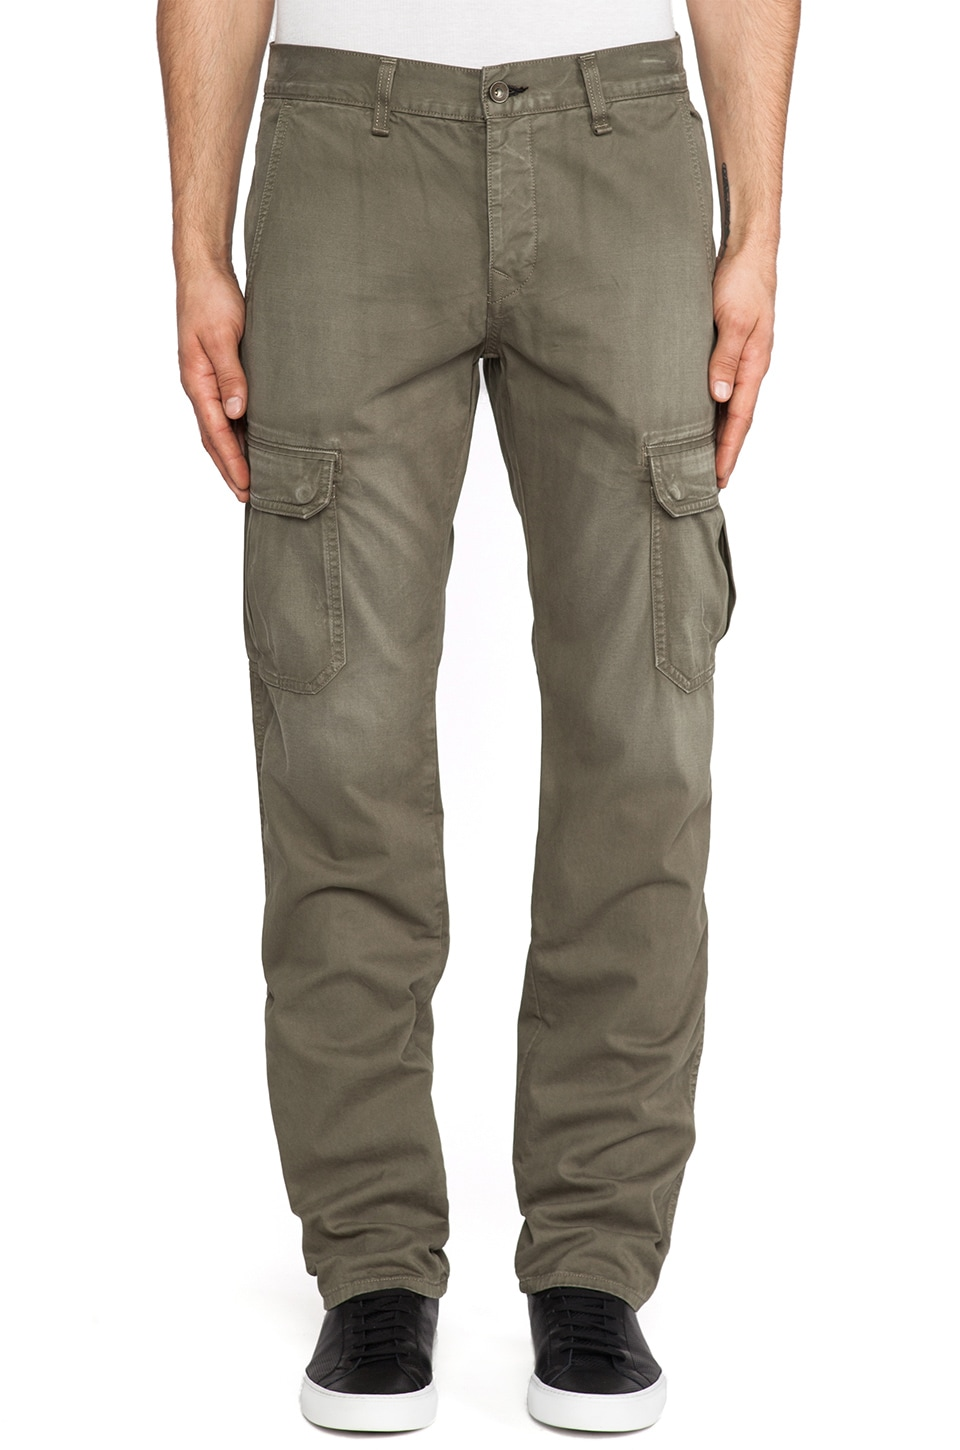 Rag & Bone Radar Cargo Pant in Distressed Army